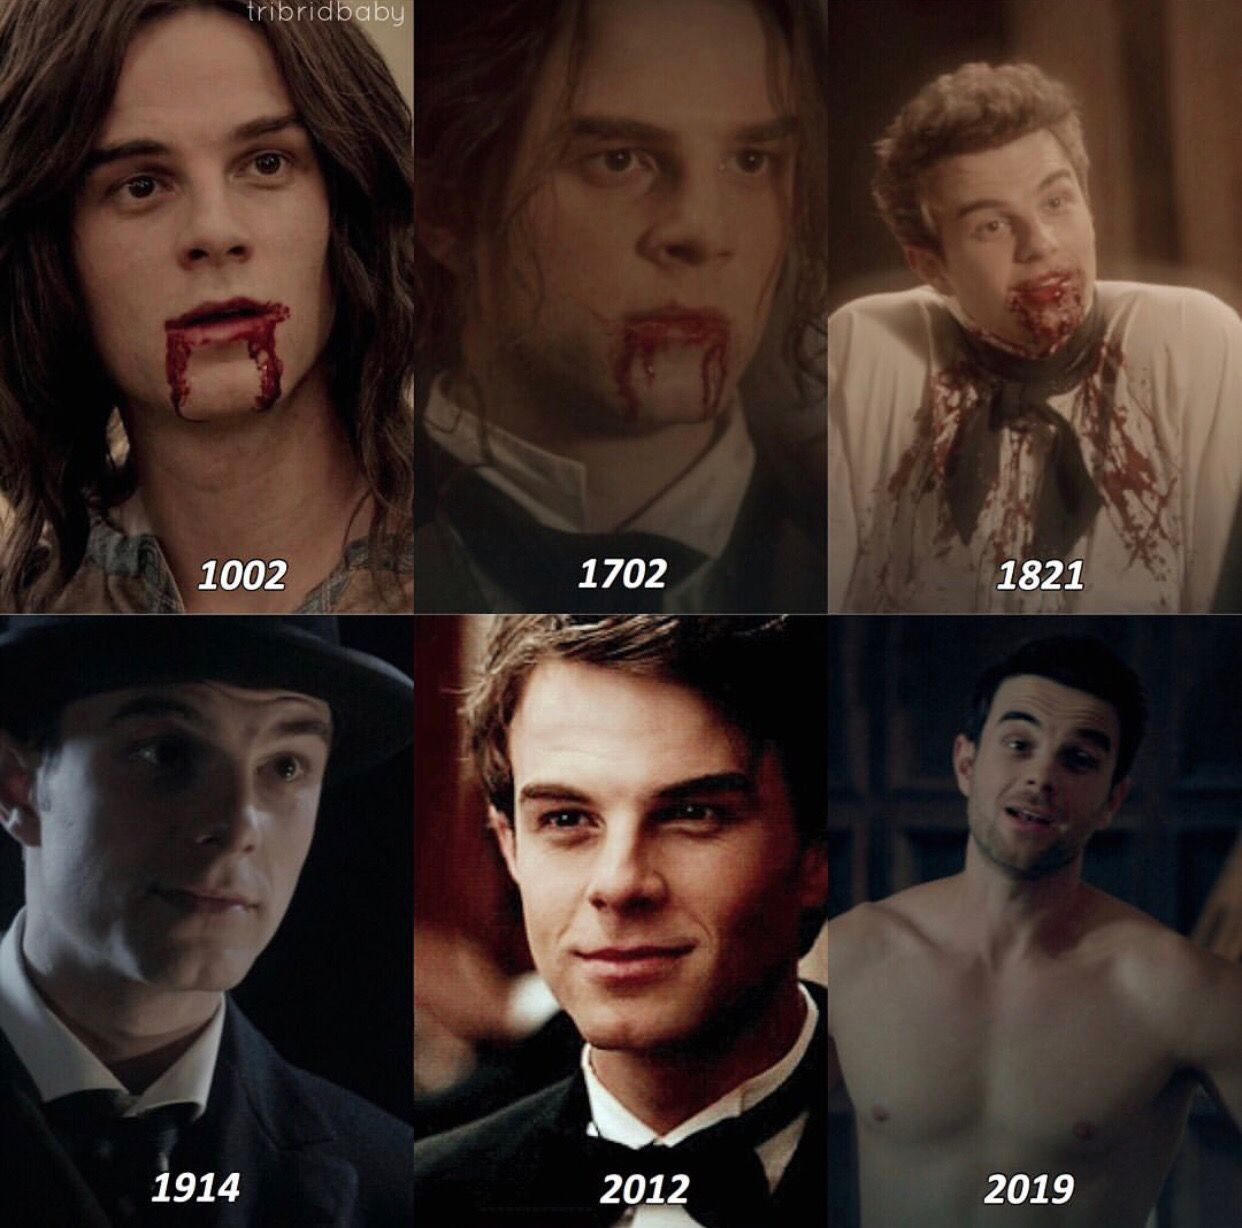 Kol Mikaelson In 2020 Vampire Diaries The Originals Vampire Diaries Cast Vampire Diaries Damon